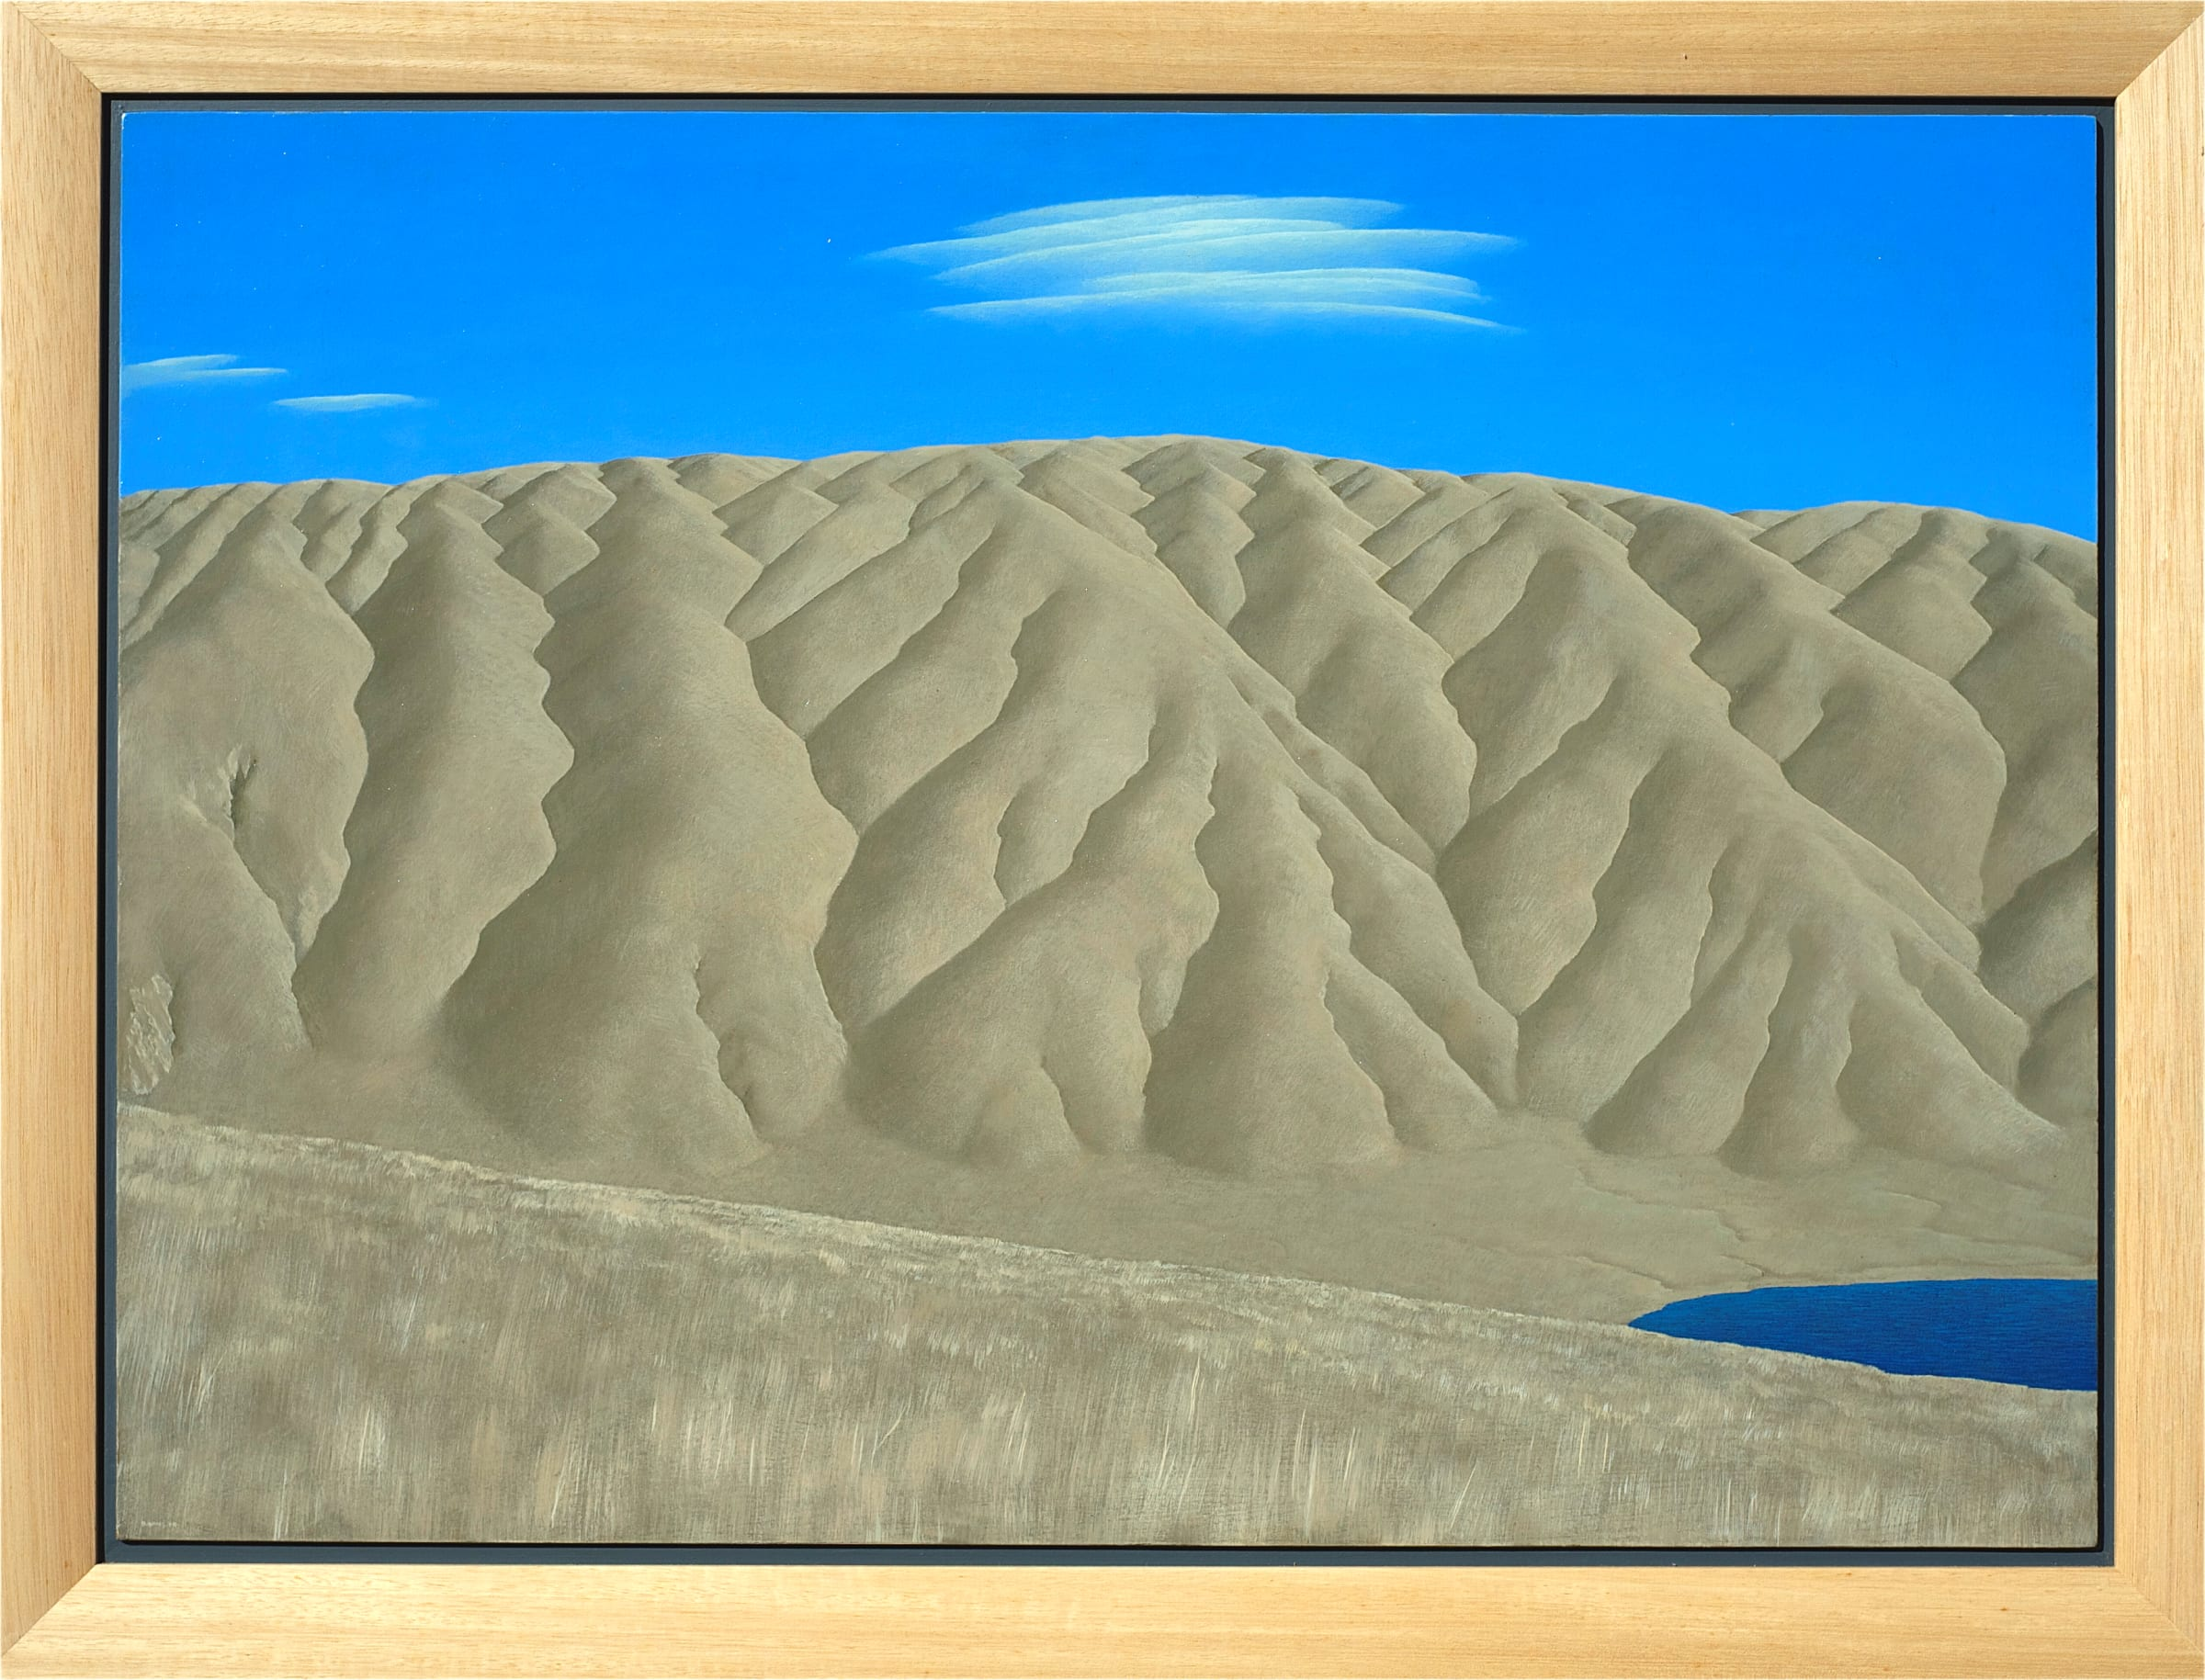 <span class=&#34;link fancybox-details-link&#34;><a href=&#34;/artists/72-brent-wong/works/7101-brent-wong-hills-with-lake-and-clouds-1979/&#34;>View Detail Page</a></span><div class=&#34;artist&#34;><strong>Brent Wong</strong></div> <div class=&#34;title&#34;><em>Hills with Lake and Clouds</em>, 1979</div> <div class=&#34;medium&#34;>Oil on canvas</div> <div class=&#34;dimensions&#34;>33.1 x 39.4 in<br />84 x 100 cm</div>